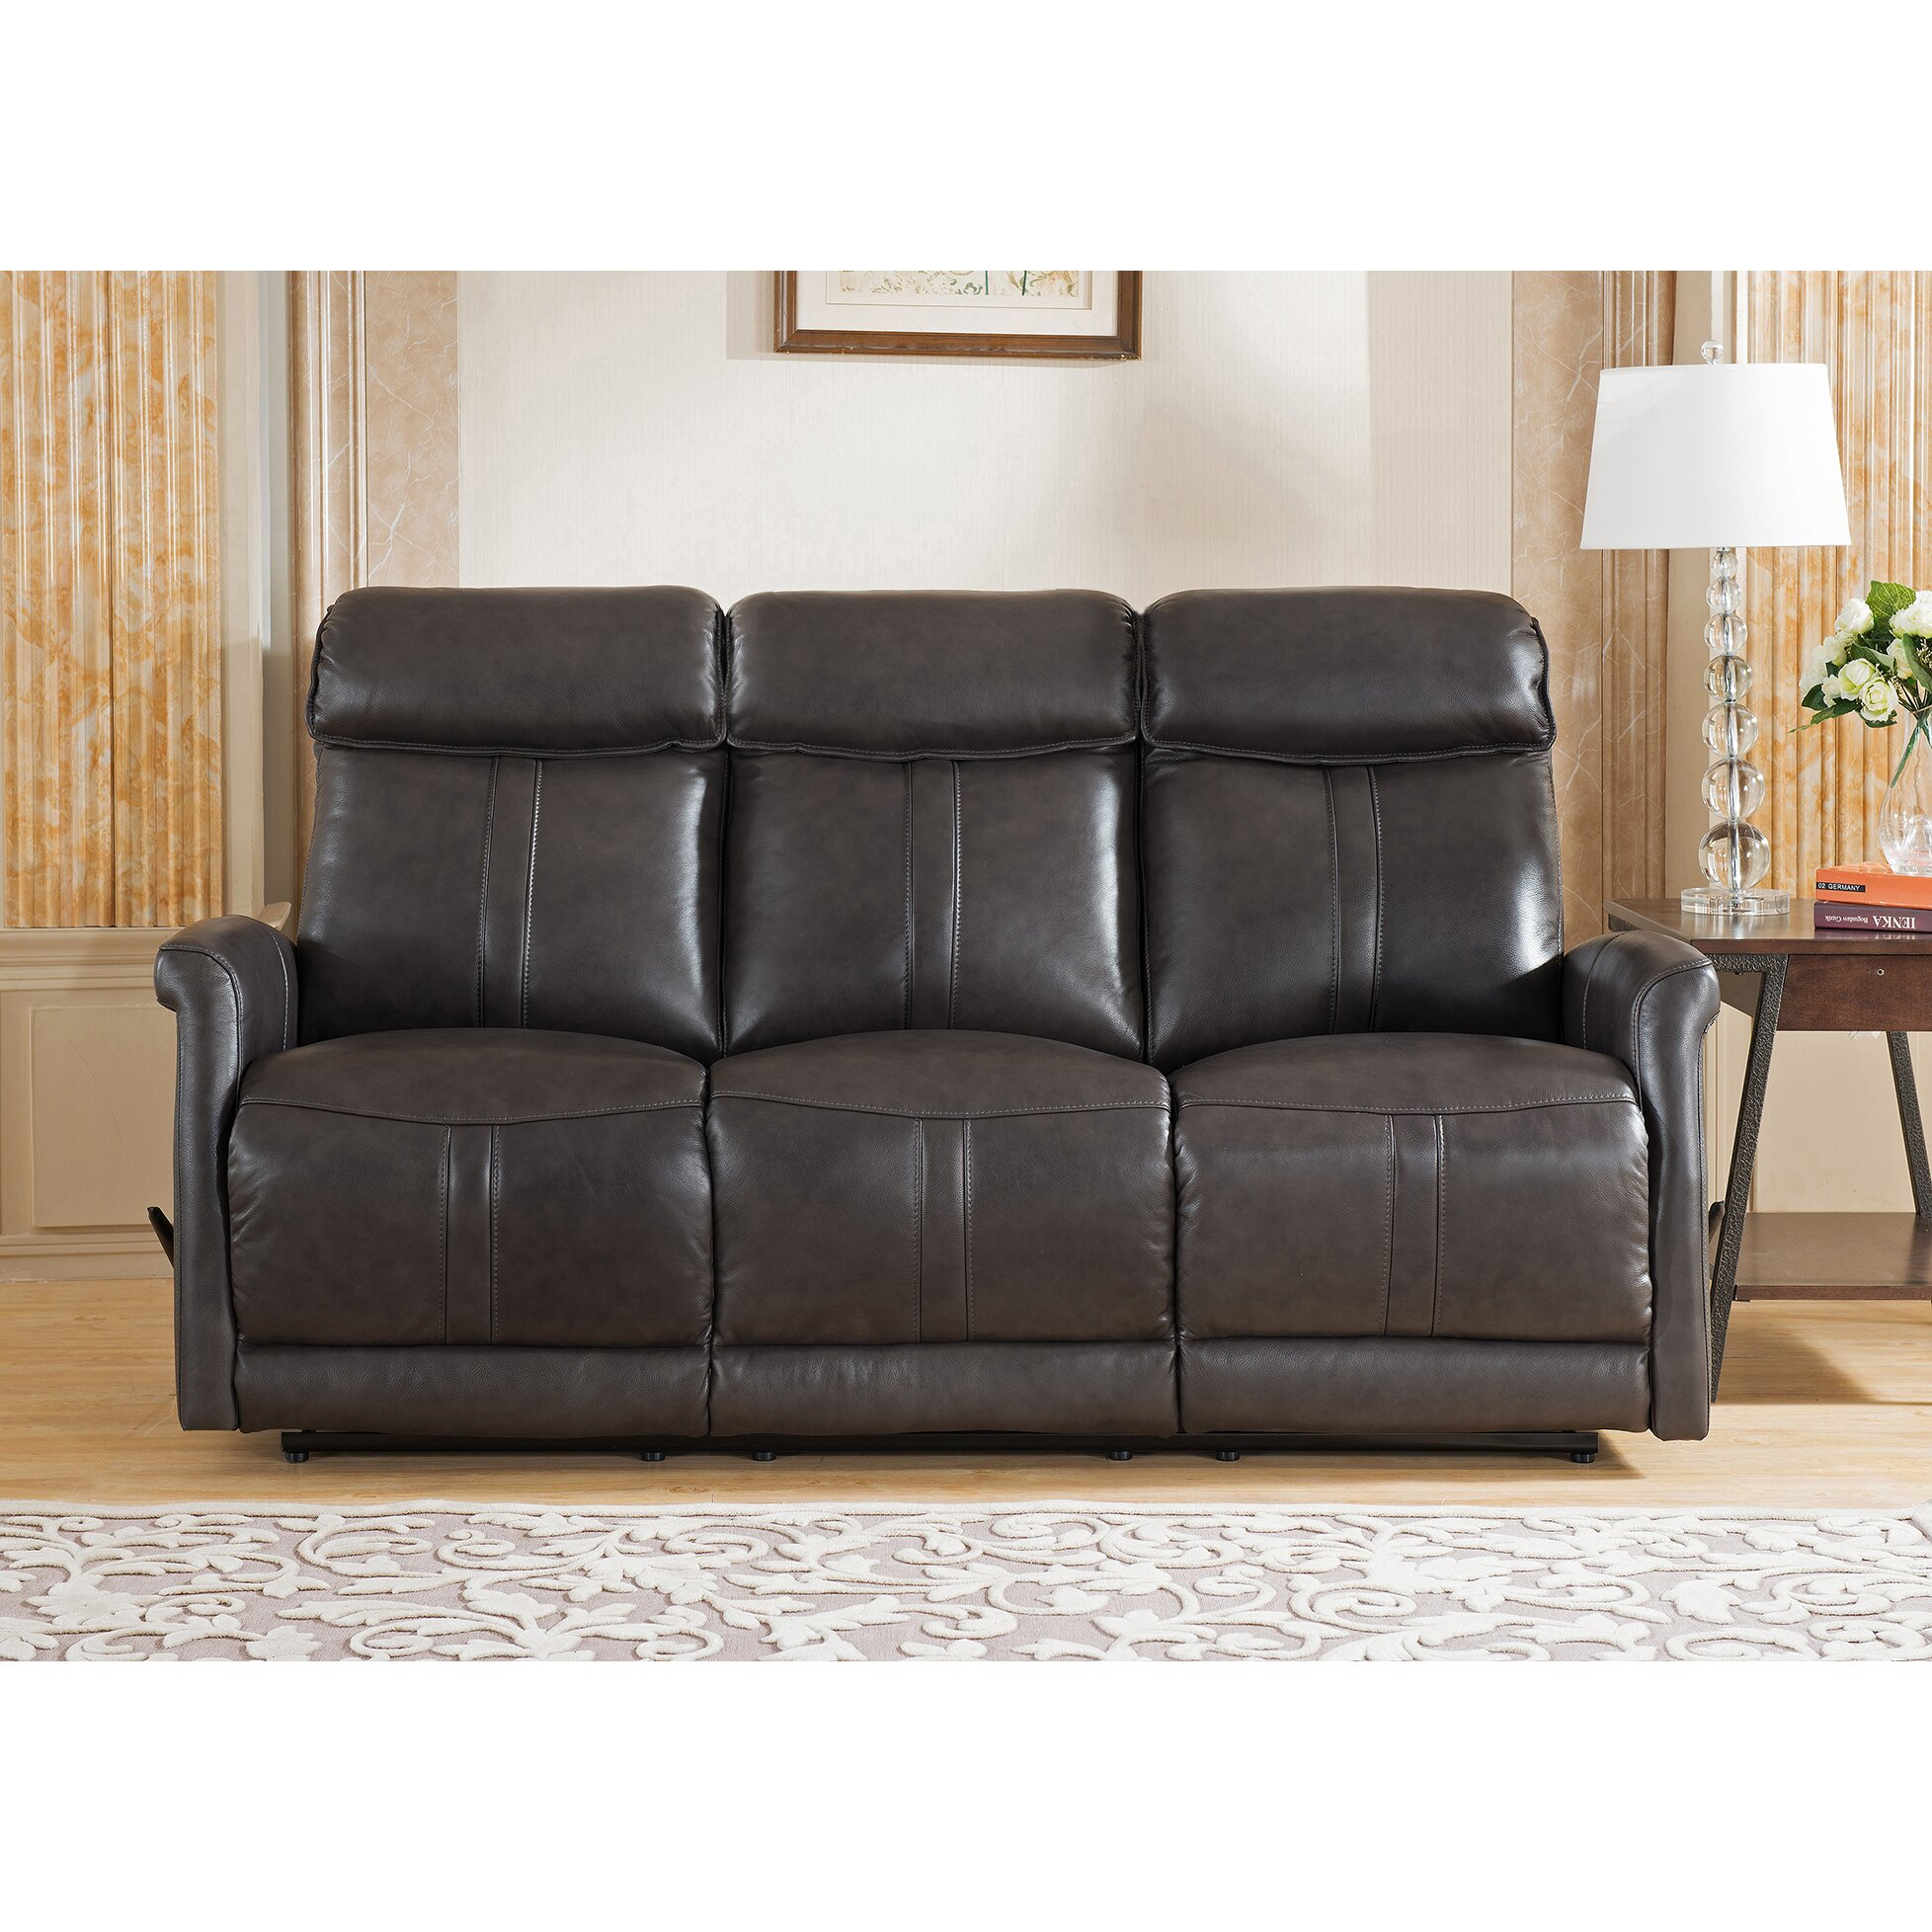 Amax mosby 3 piece leather living room set wayfair for Three piece leather living room set